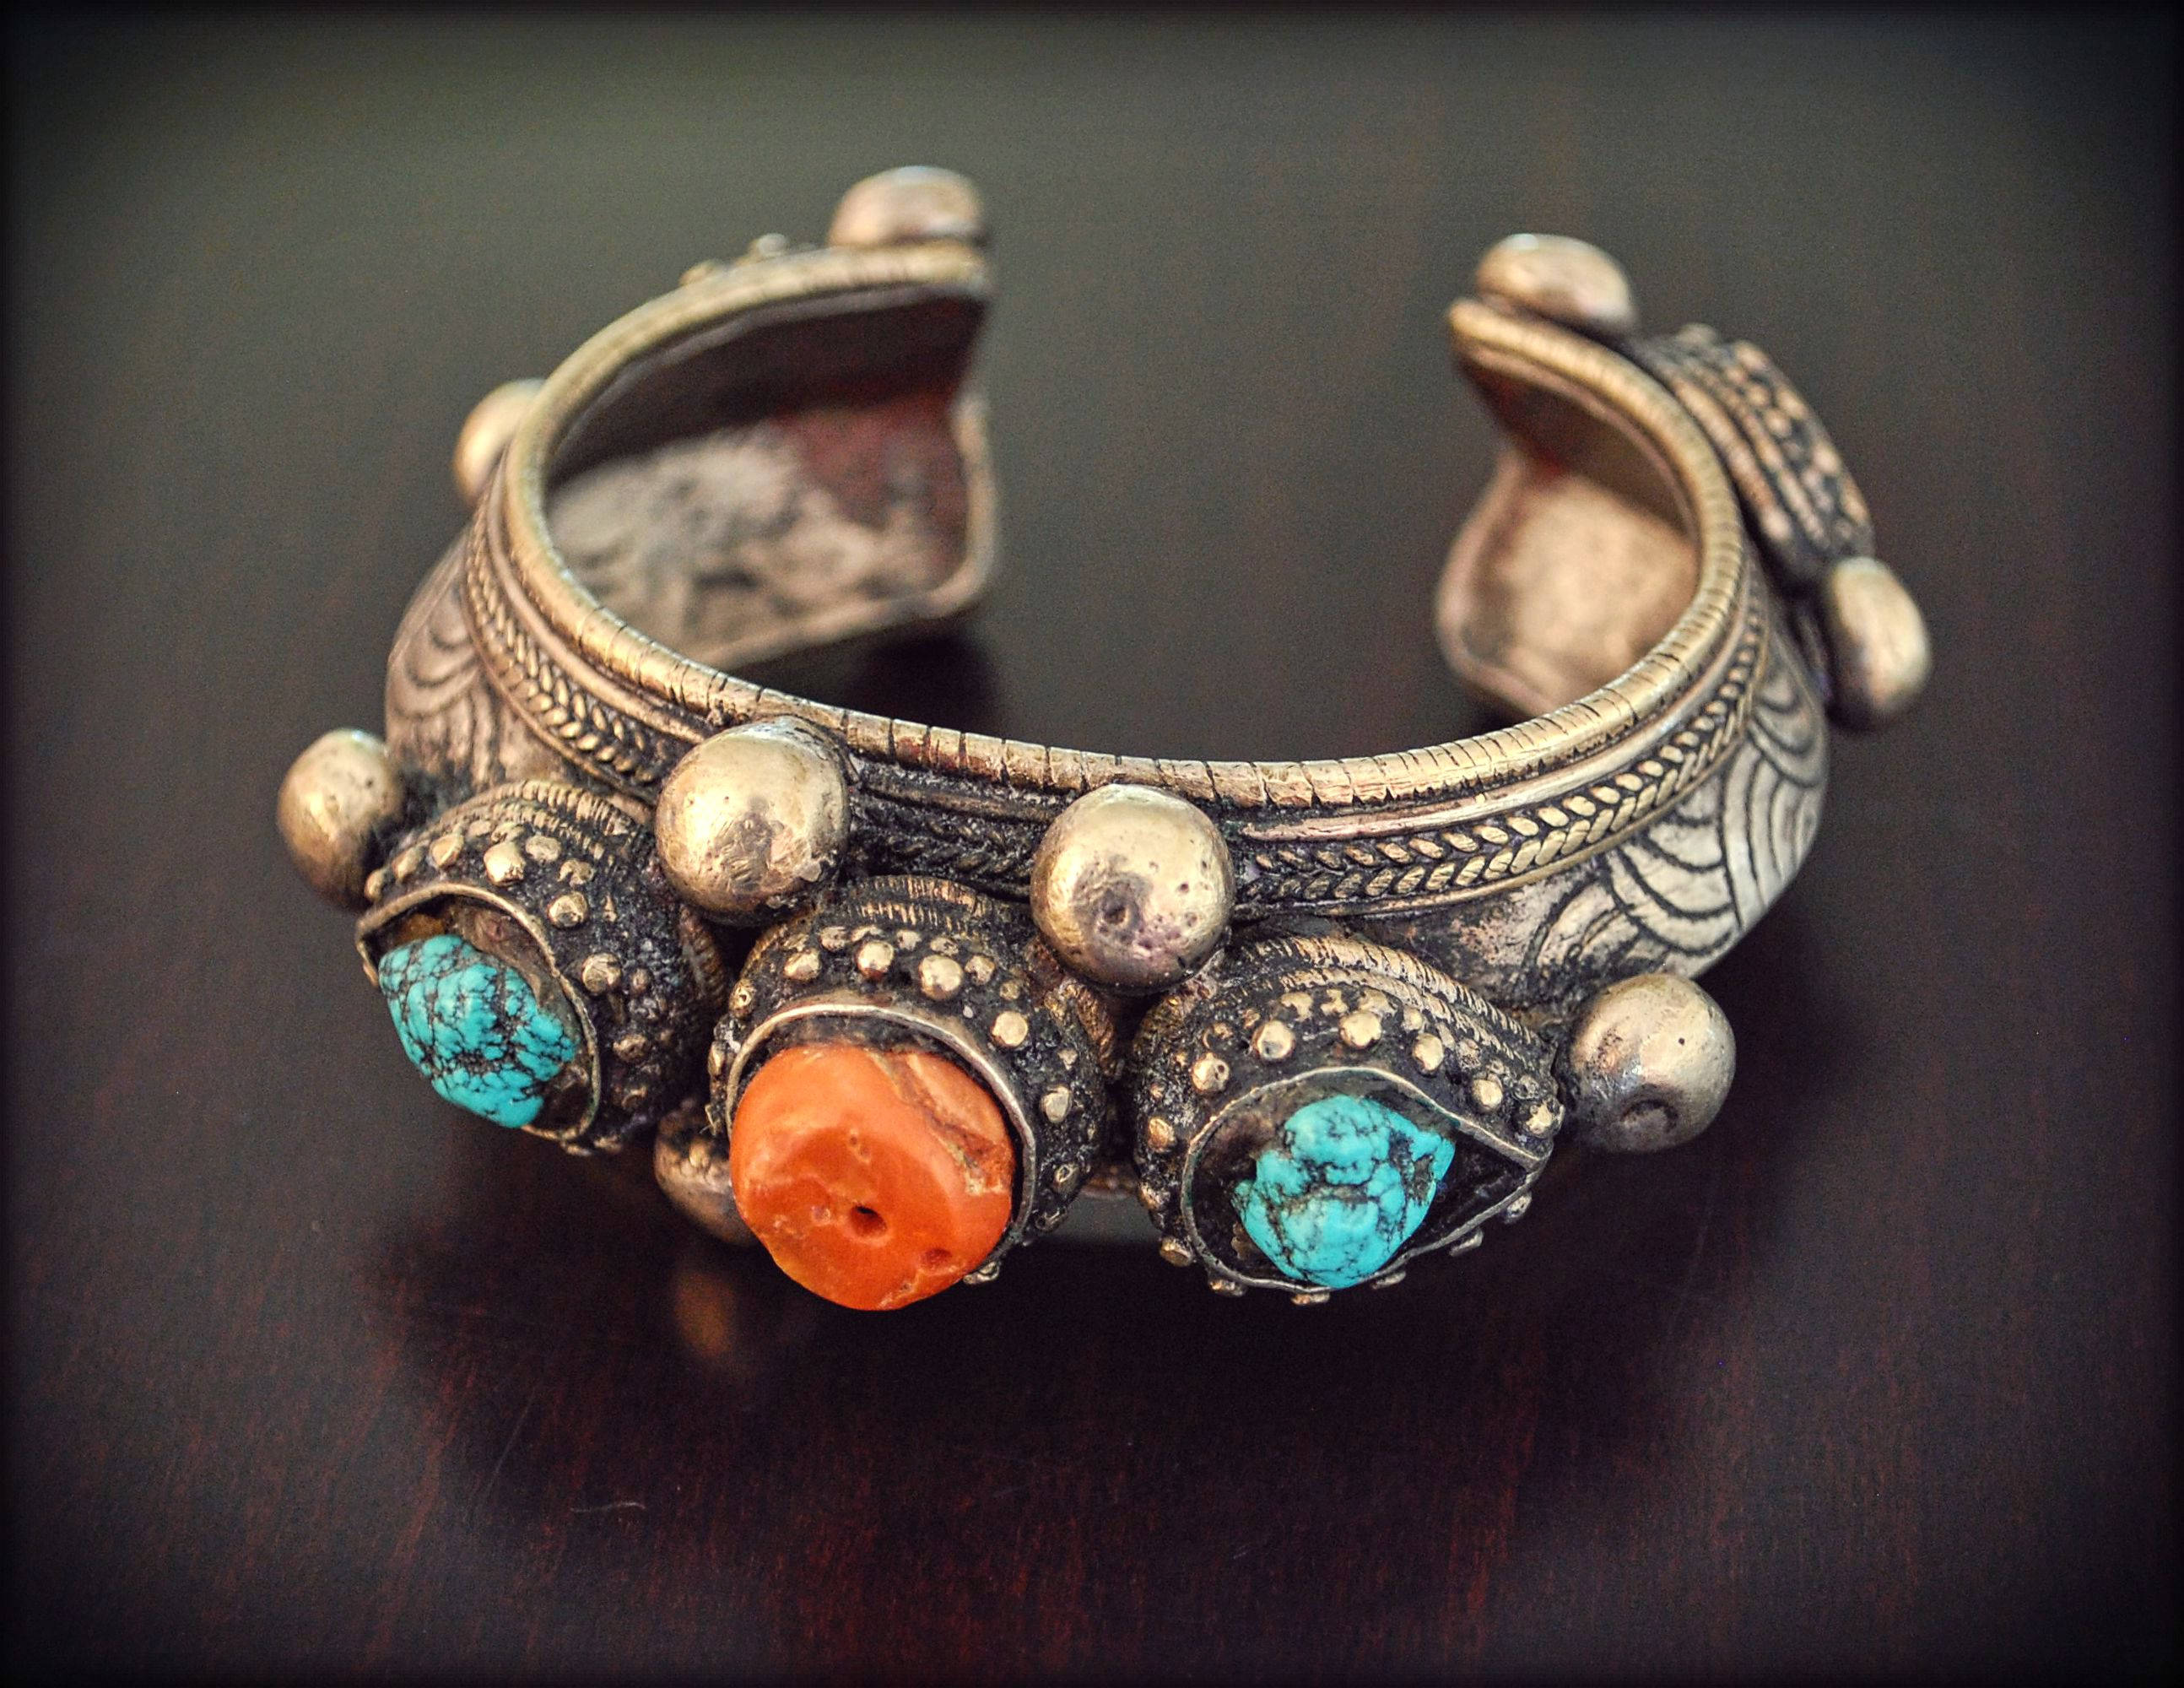 Antique Tibetan Bracelet With Turquoise and Coral - Bhutanese Dobchu Bracelet - Tibetan Antiques - Antique Himalayan Cuff Bracelet